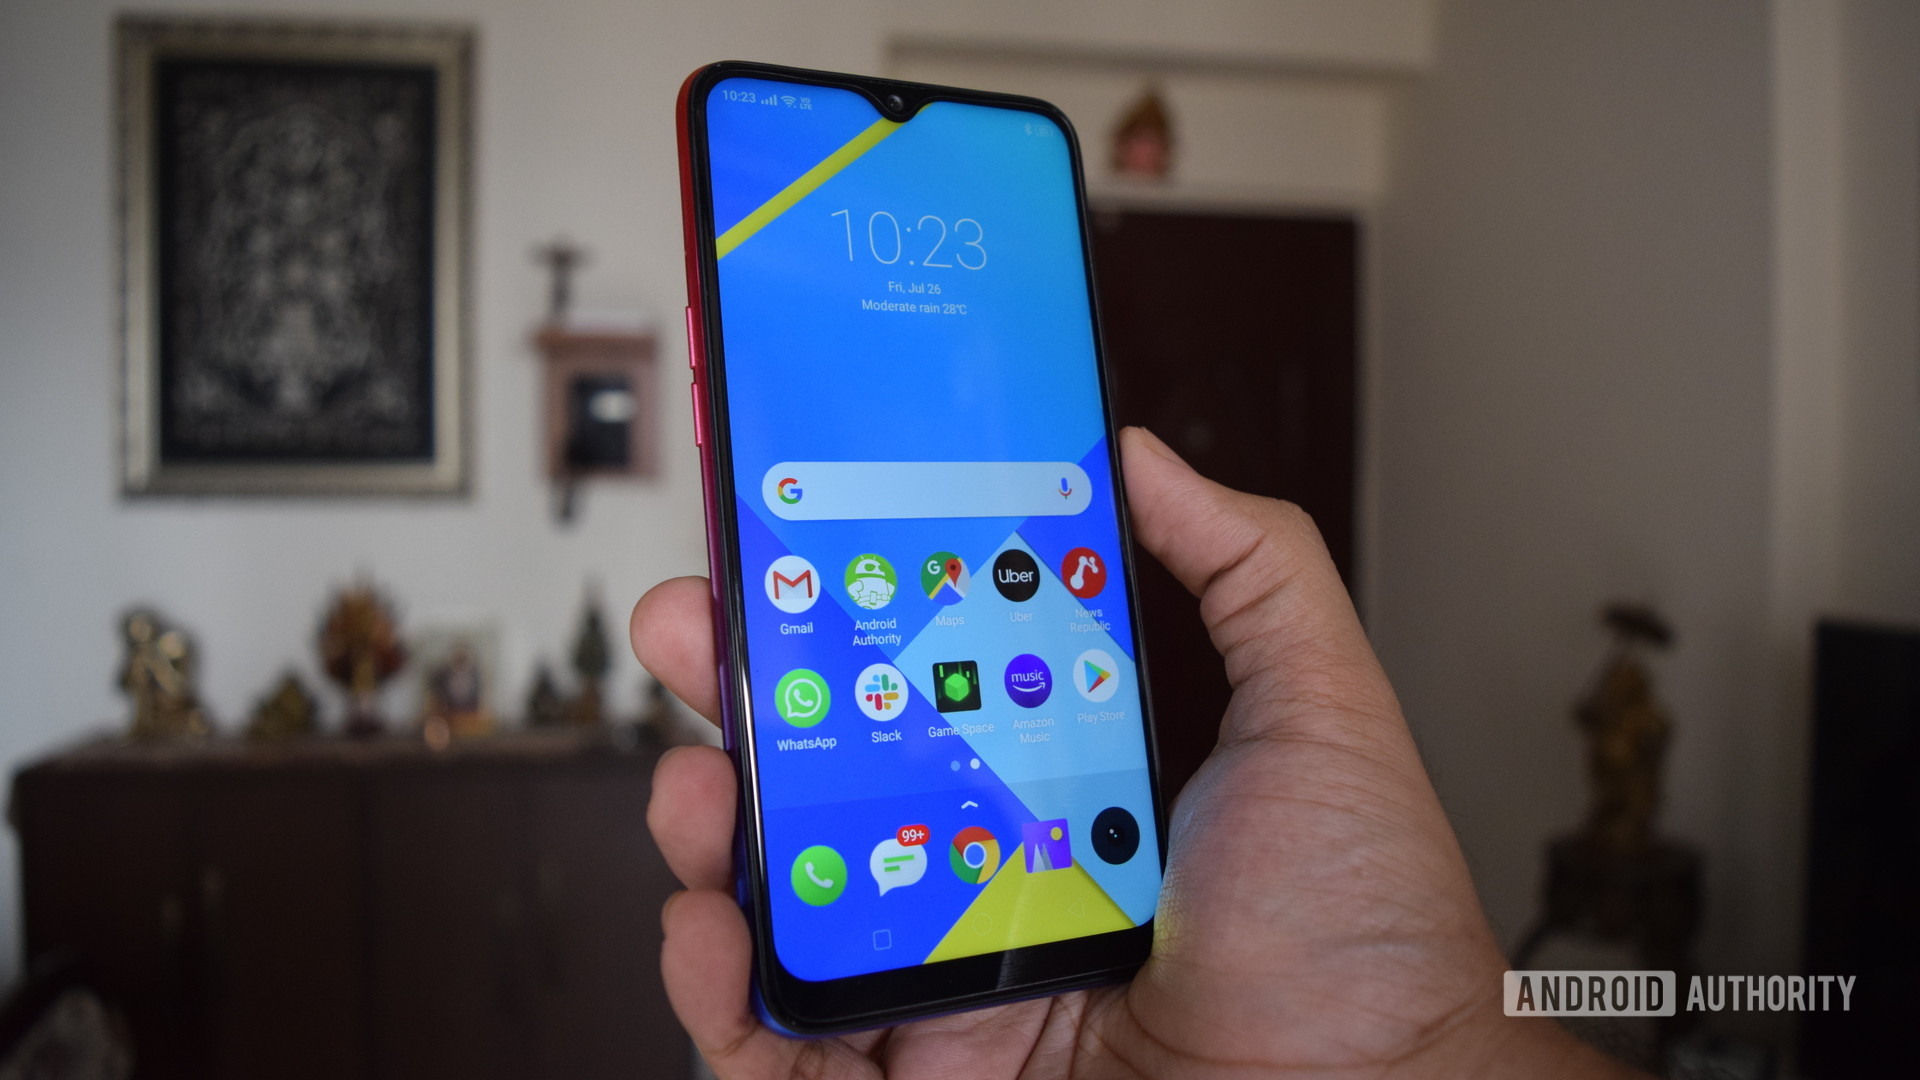 realme 3i review phone in hand showing display